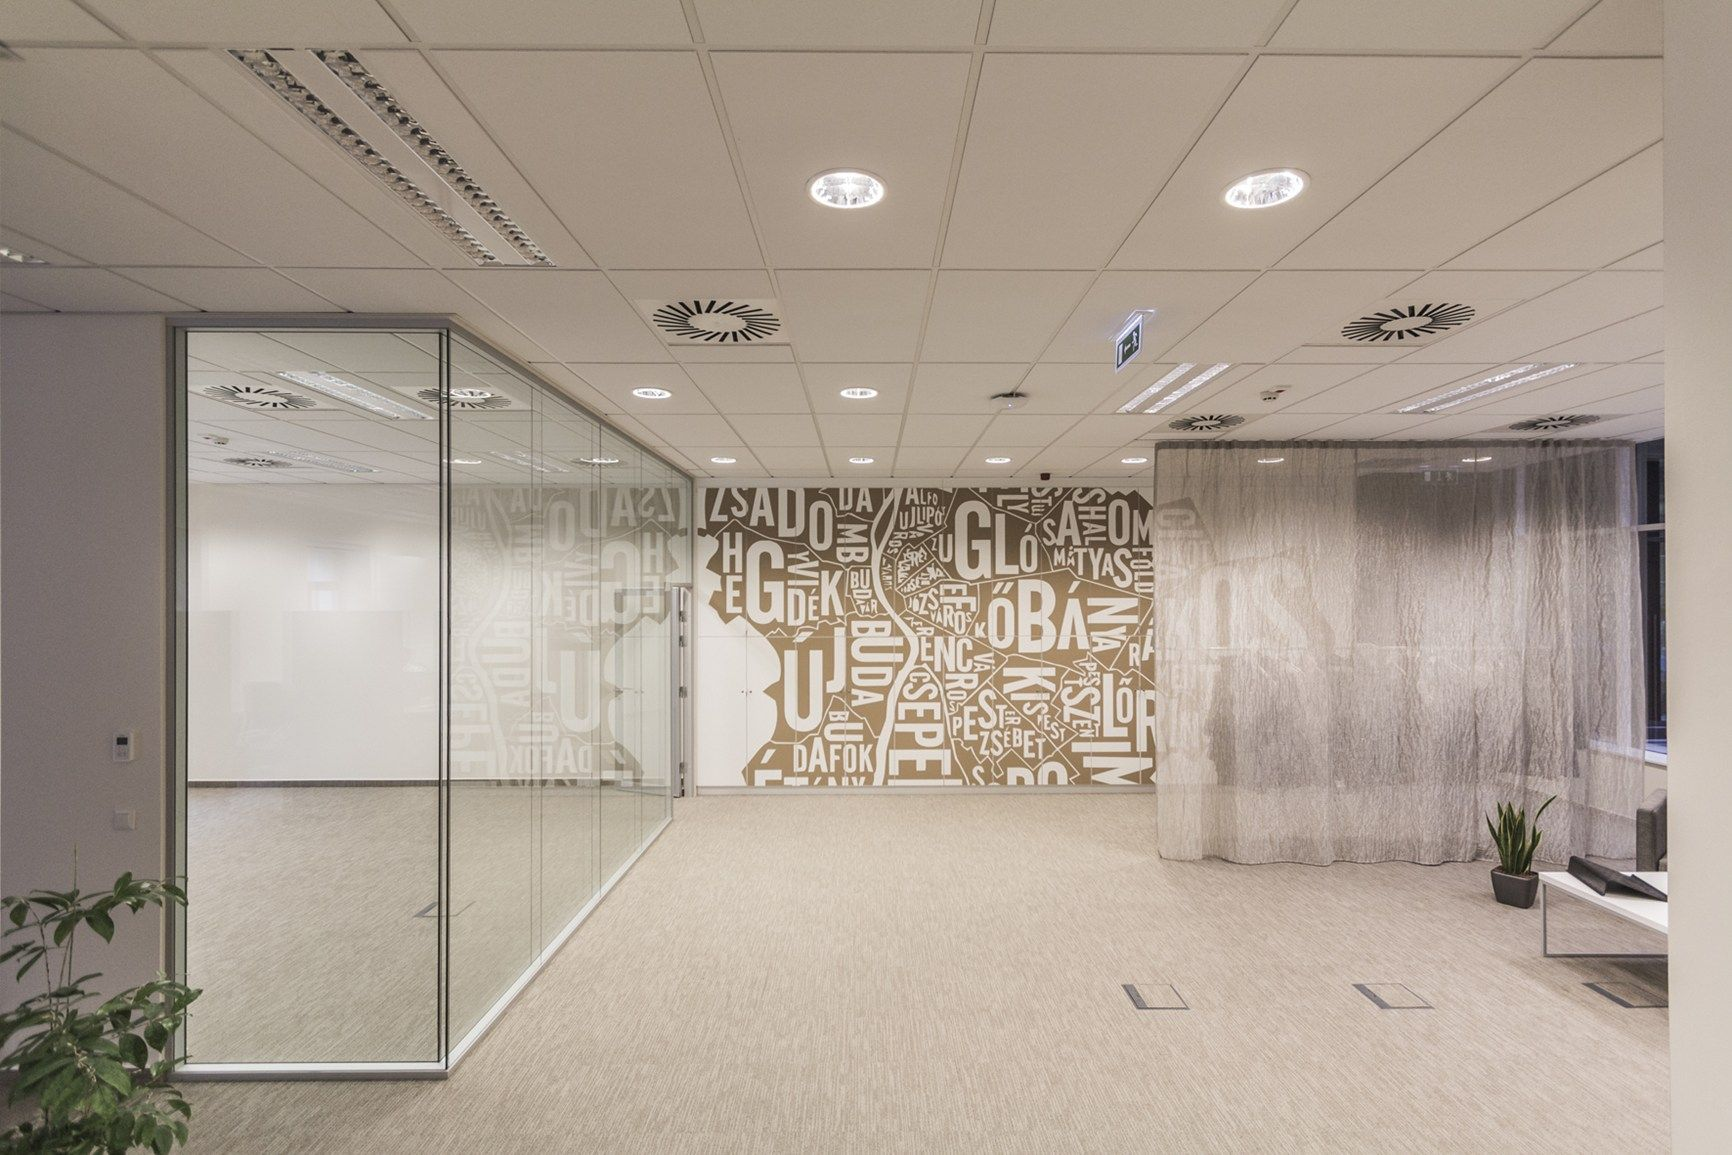 Perla OP 0.95 di Armstrong Building Products tra le tecnologie innovative dell'Eiffel Palace di Budapest